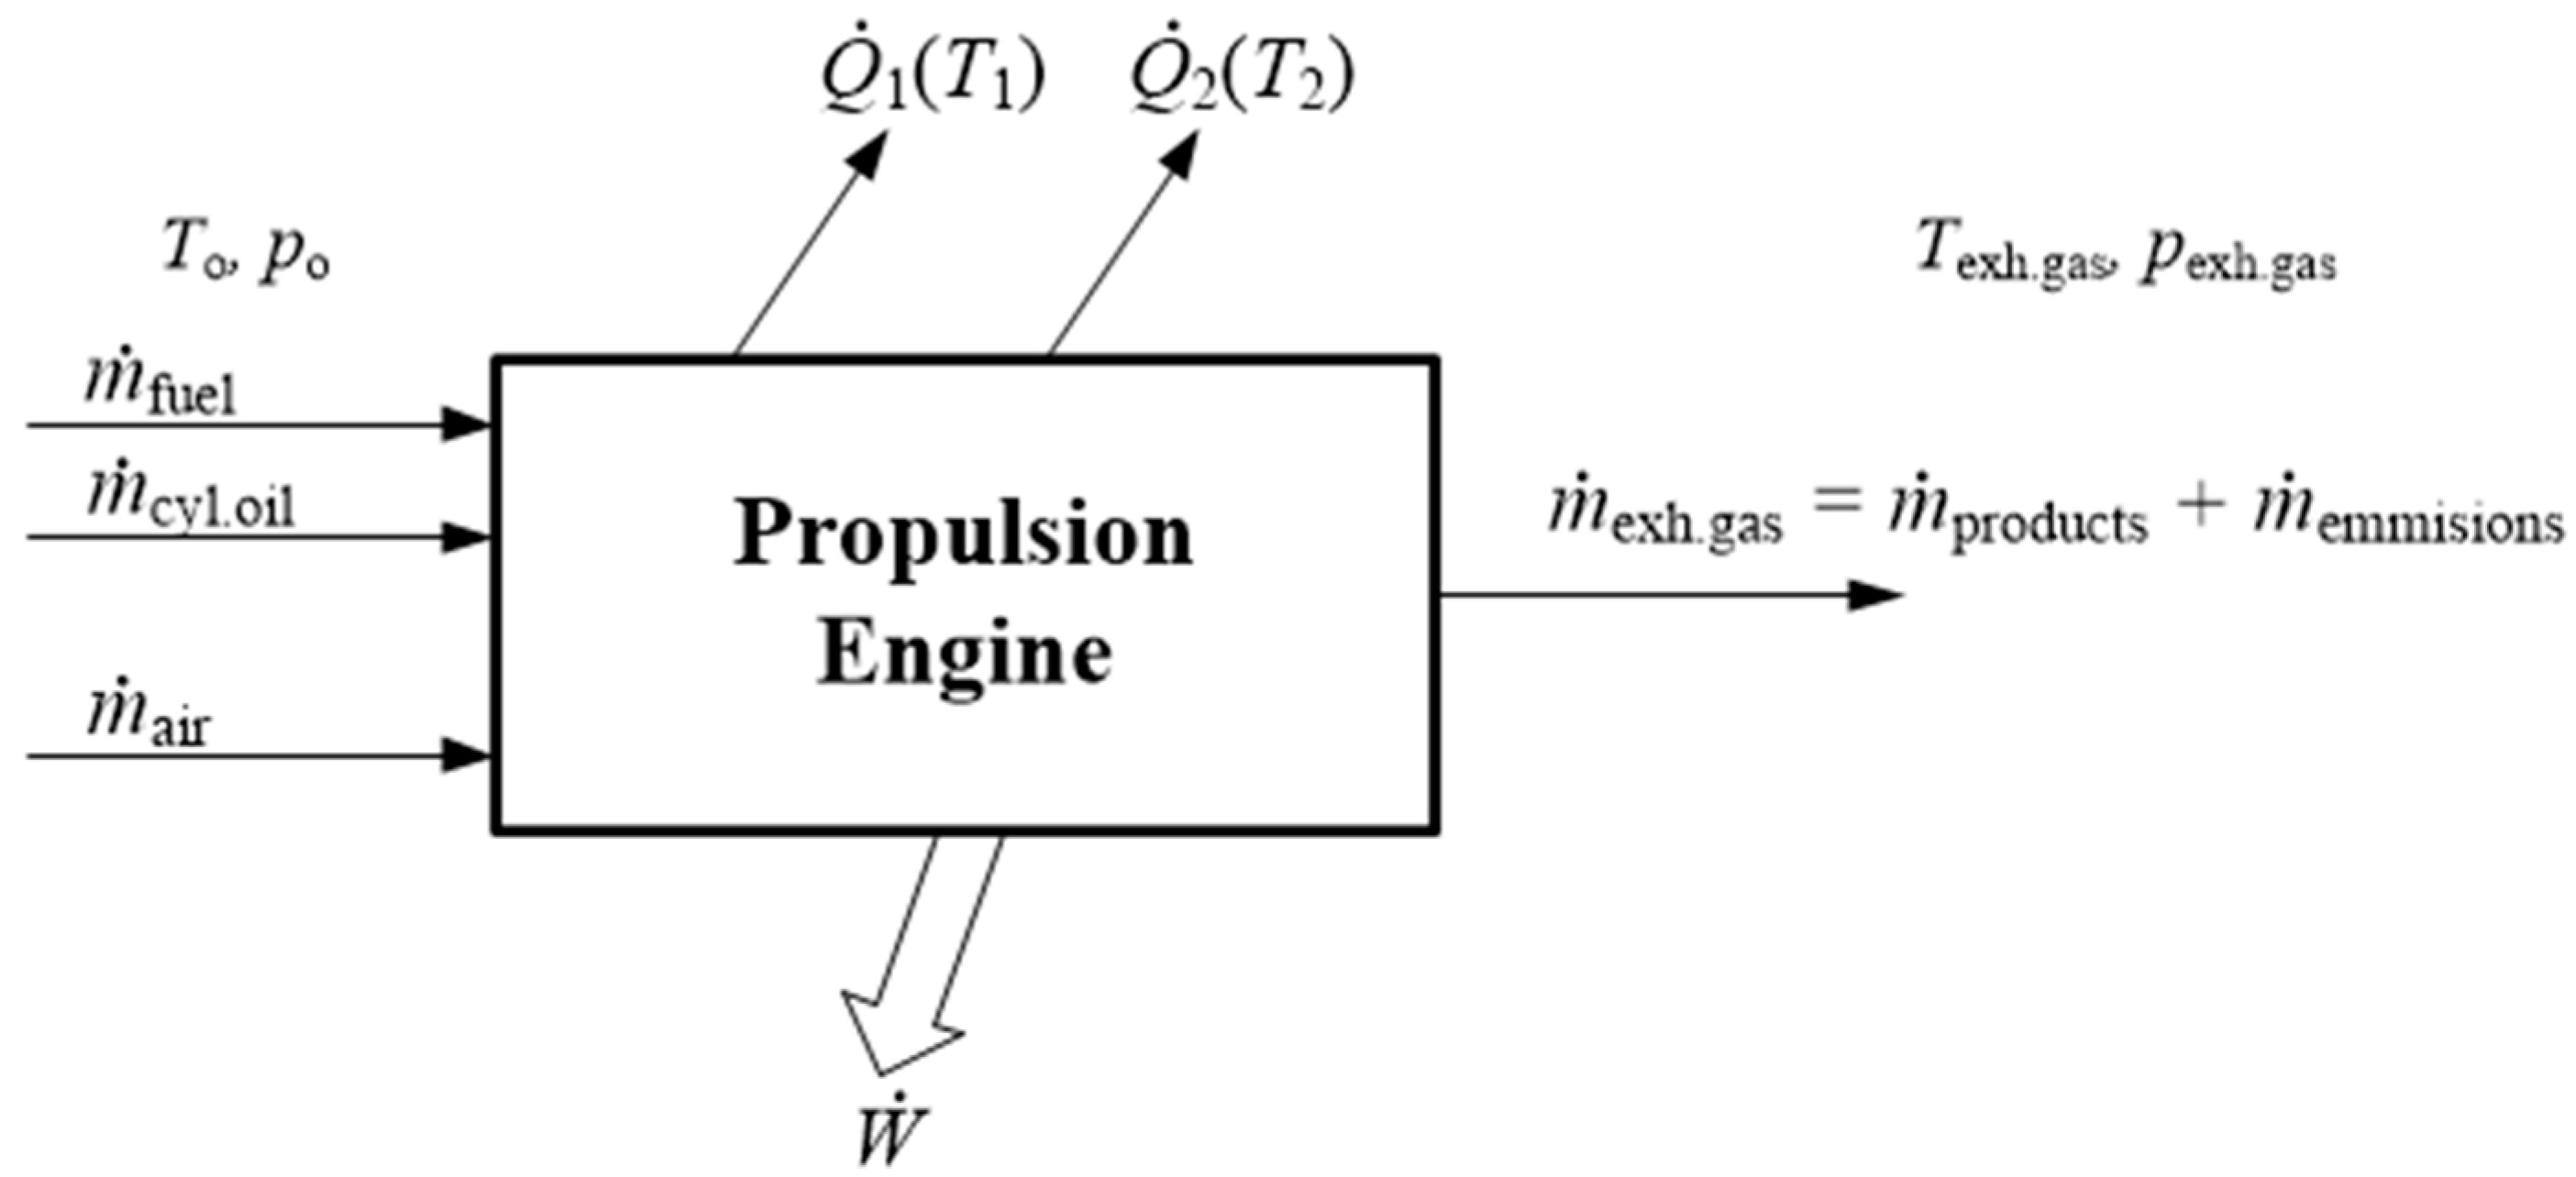 Engine Oiling Diagram Energies Free Full Text Of Engine Oiling Diagram  Porsche 944 Engine Oil Flow